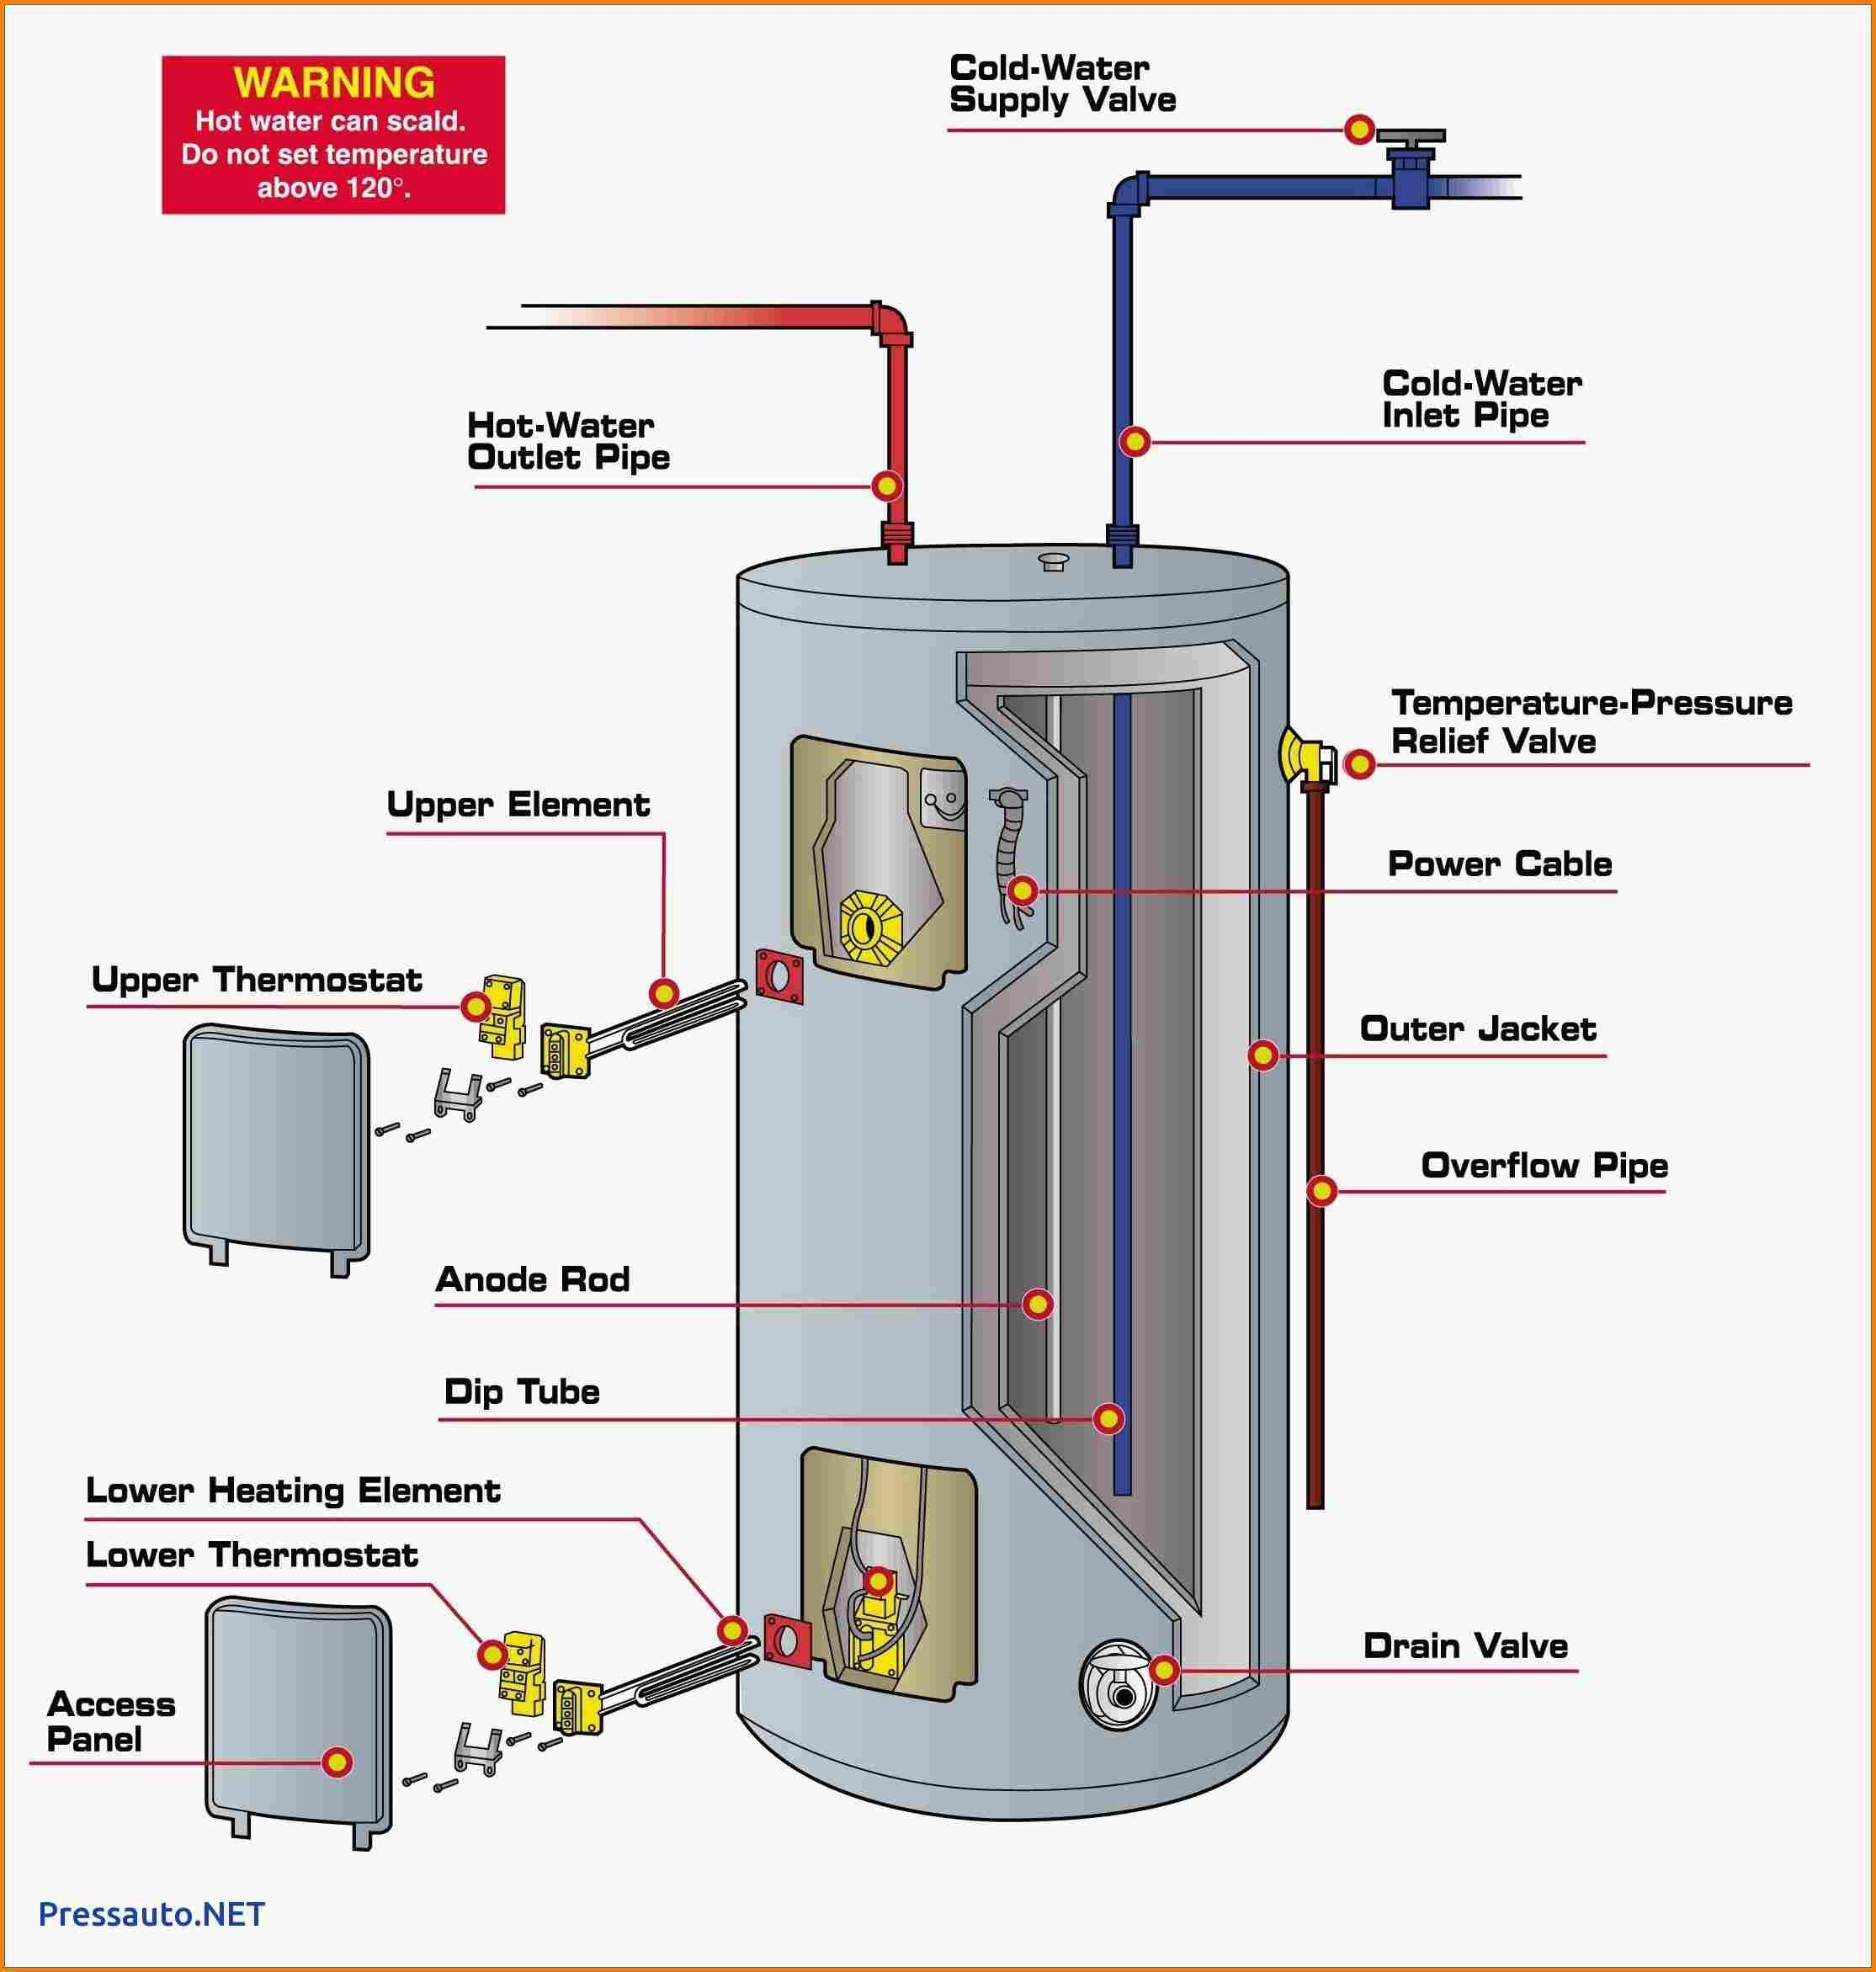 Ge Hot Water Heater Diagram - Data Wiring Diagram Today - Electric Water Heater Wiring Diagram